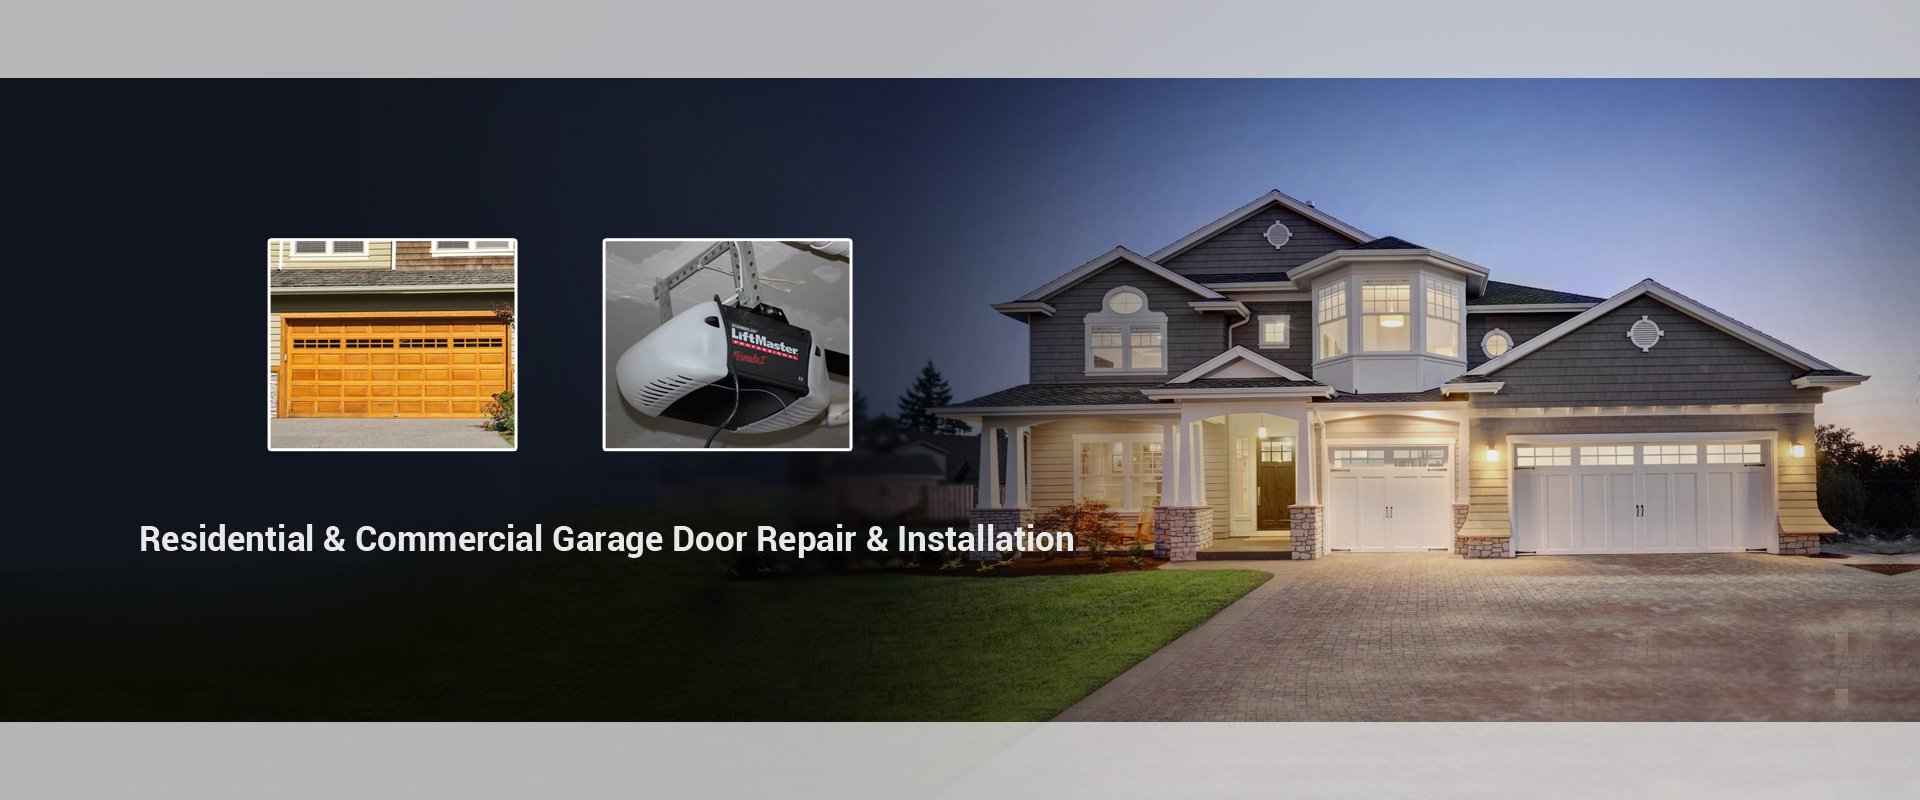 Garage Door Services Ventura CA